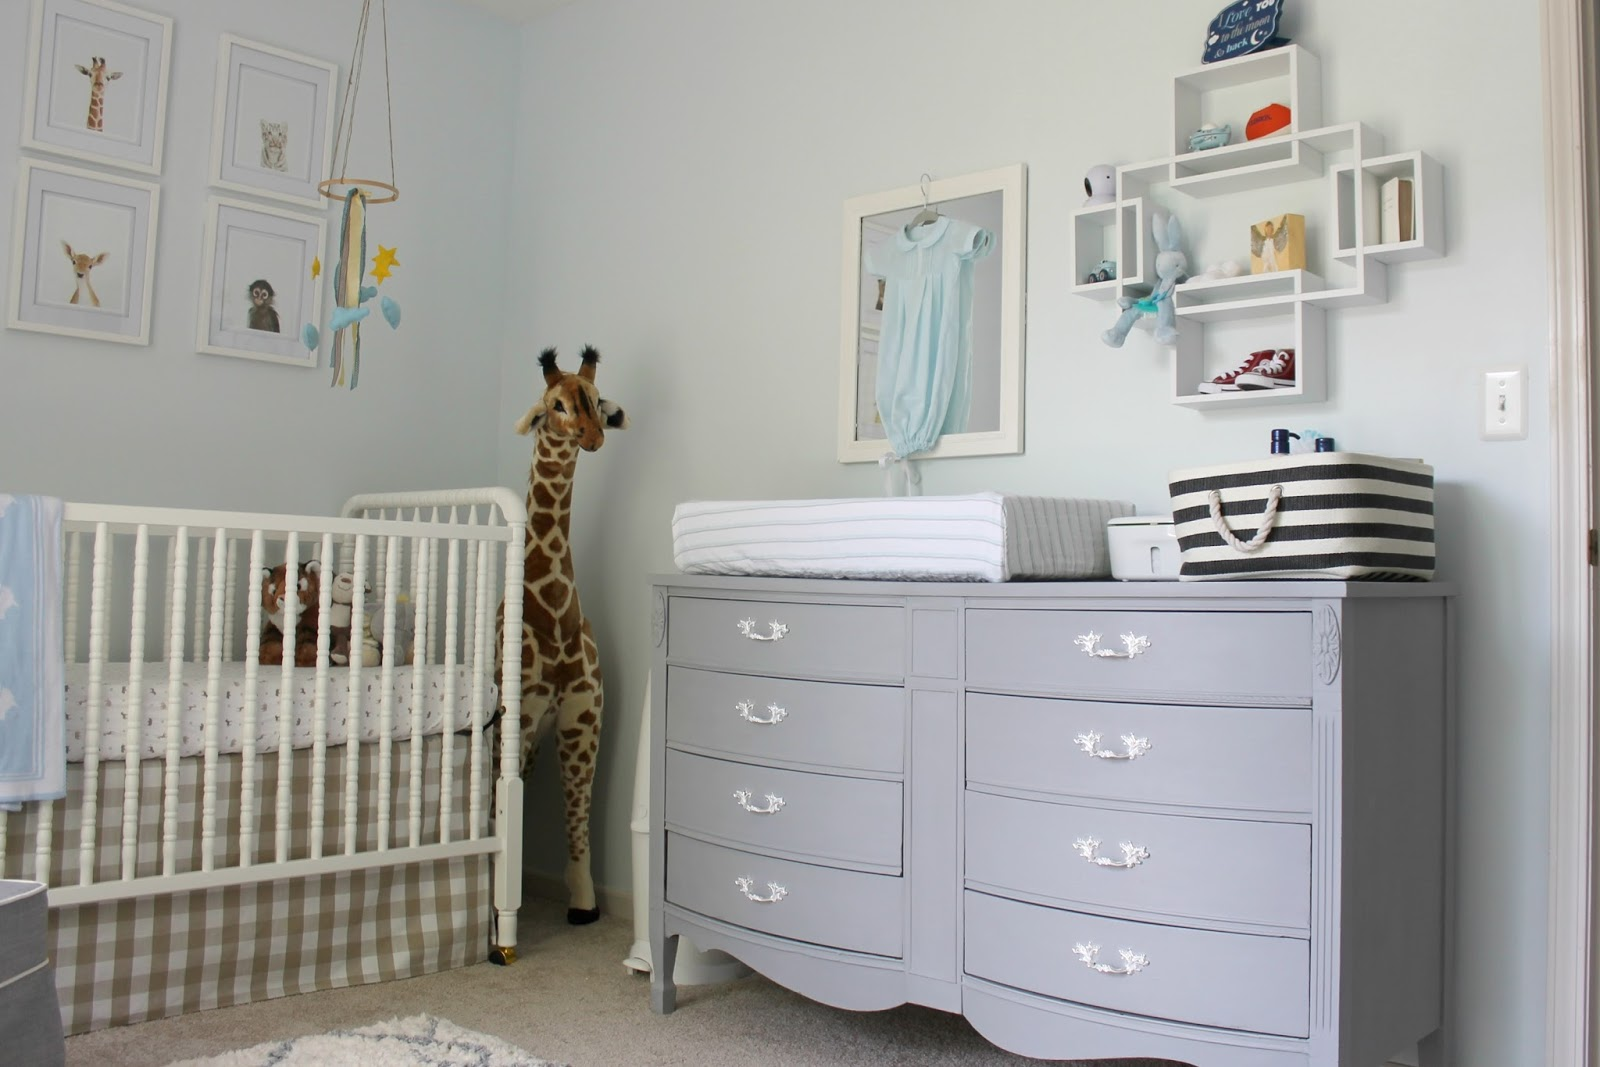 I Love How Much Storage This Piece Has Compared To Other Changing Tables.